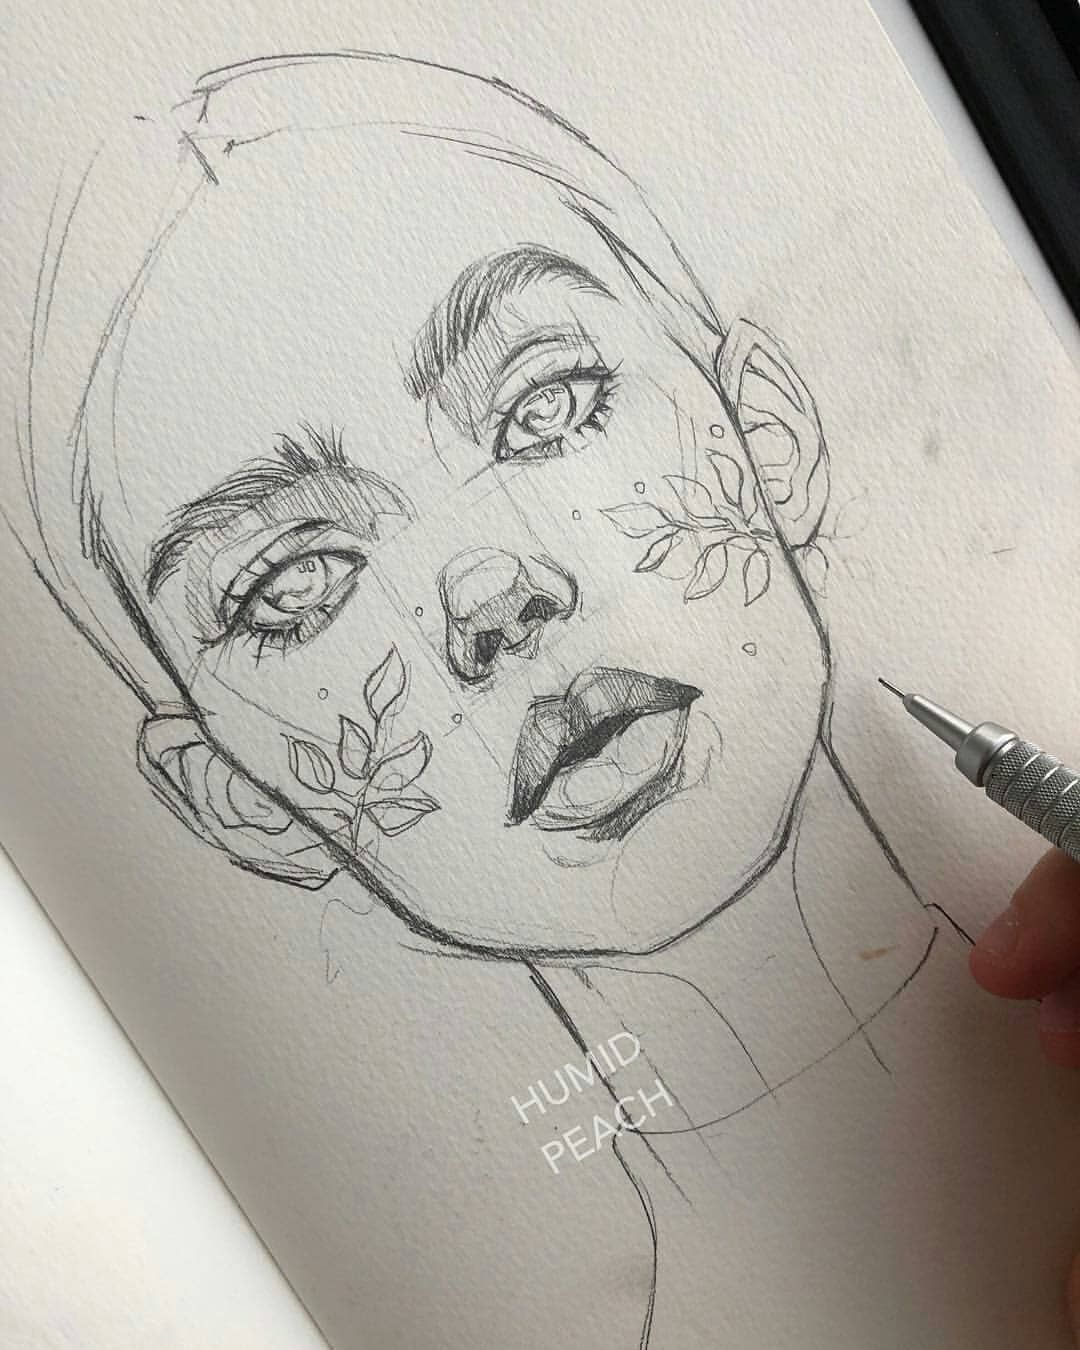 ✏DAILY DOSE OF SKETCHING